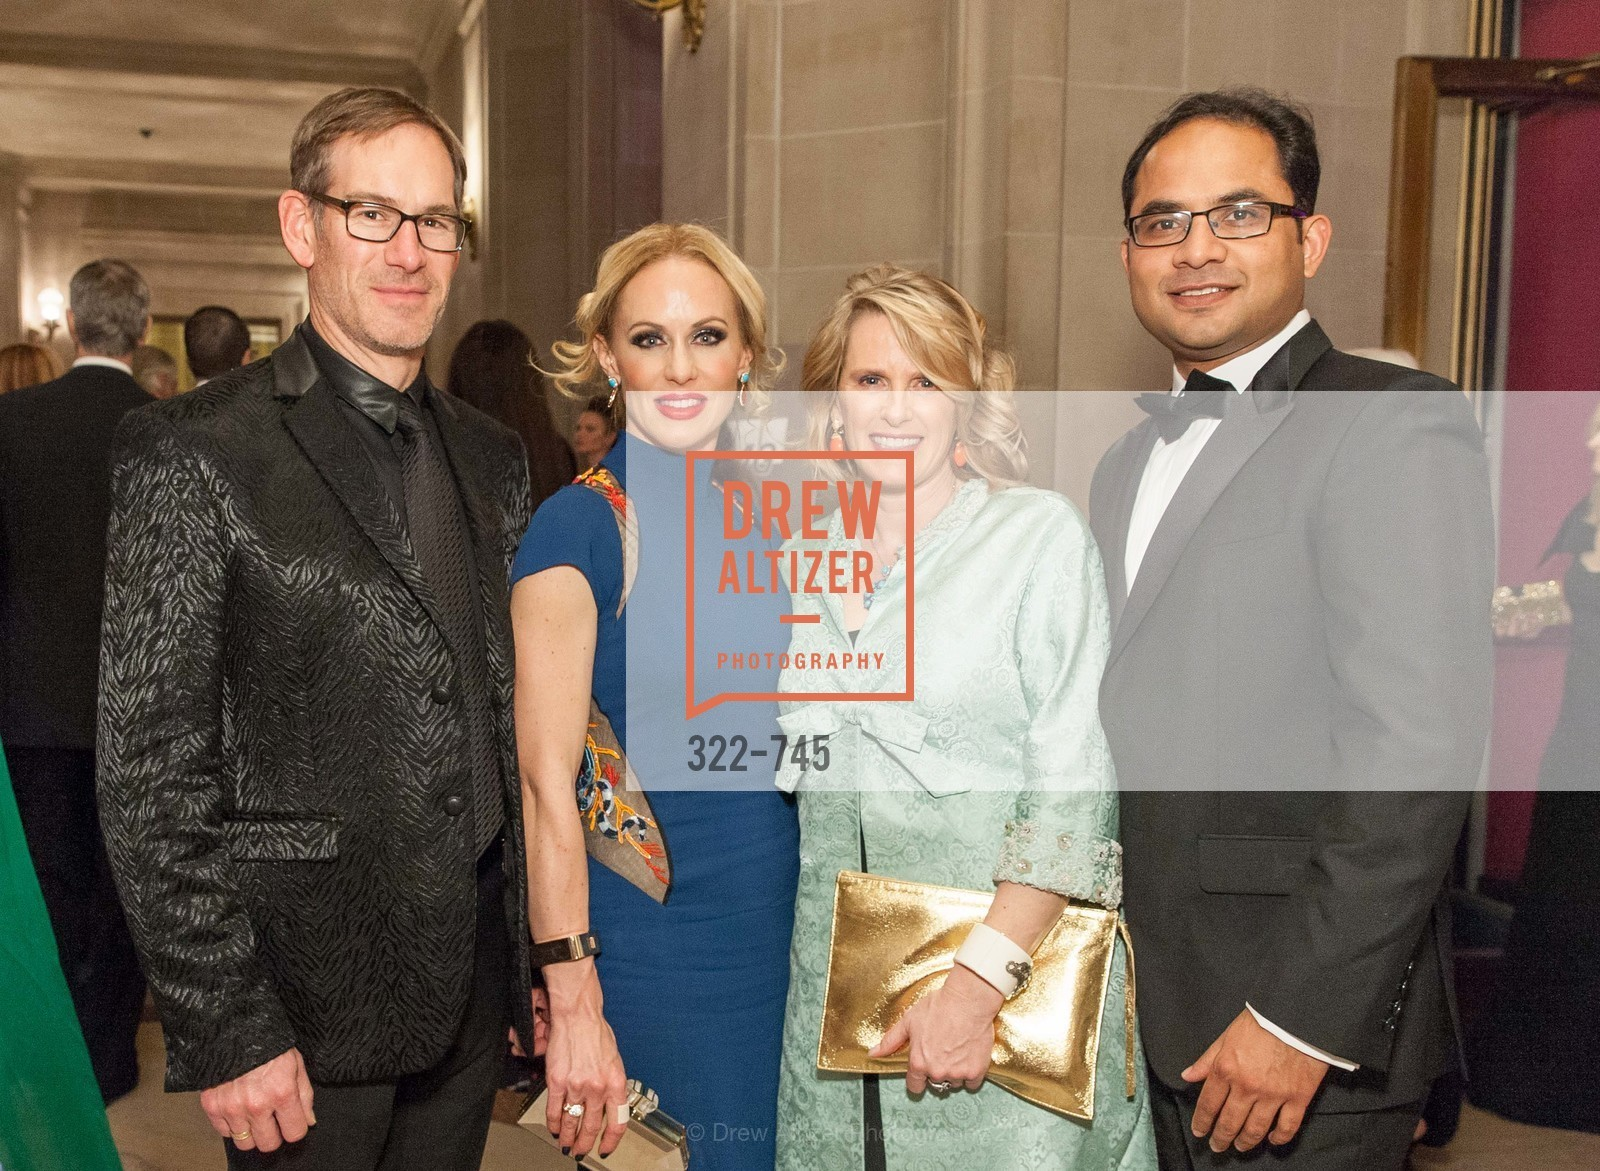 Chris Hollenbeck, Holly Hollenbeck, Marie Hurabiell, Mainul Mondal, San Francisco Ballet 2016 Opening Night Gala Part 2, San Francisco City Hall, January 21st, 2016